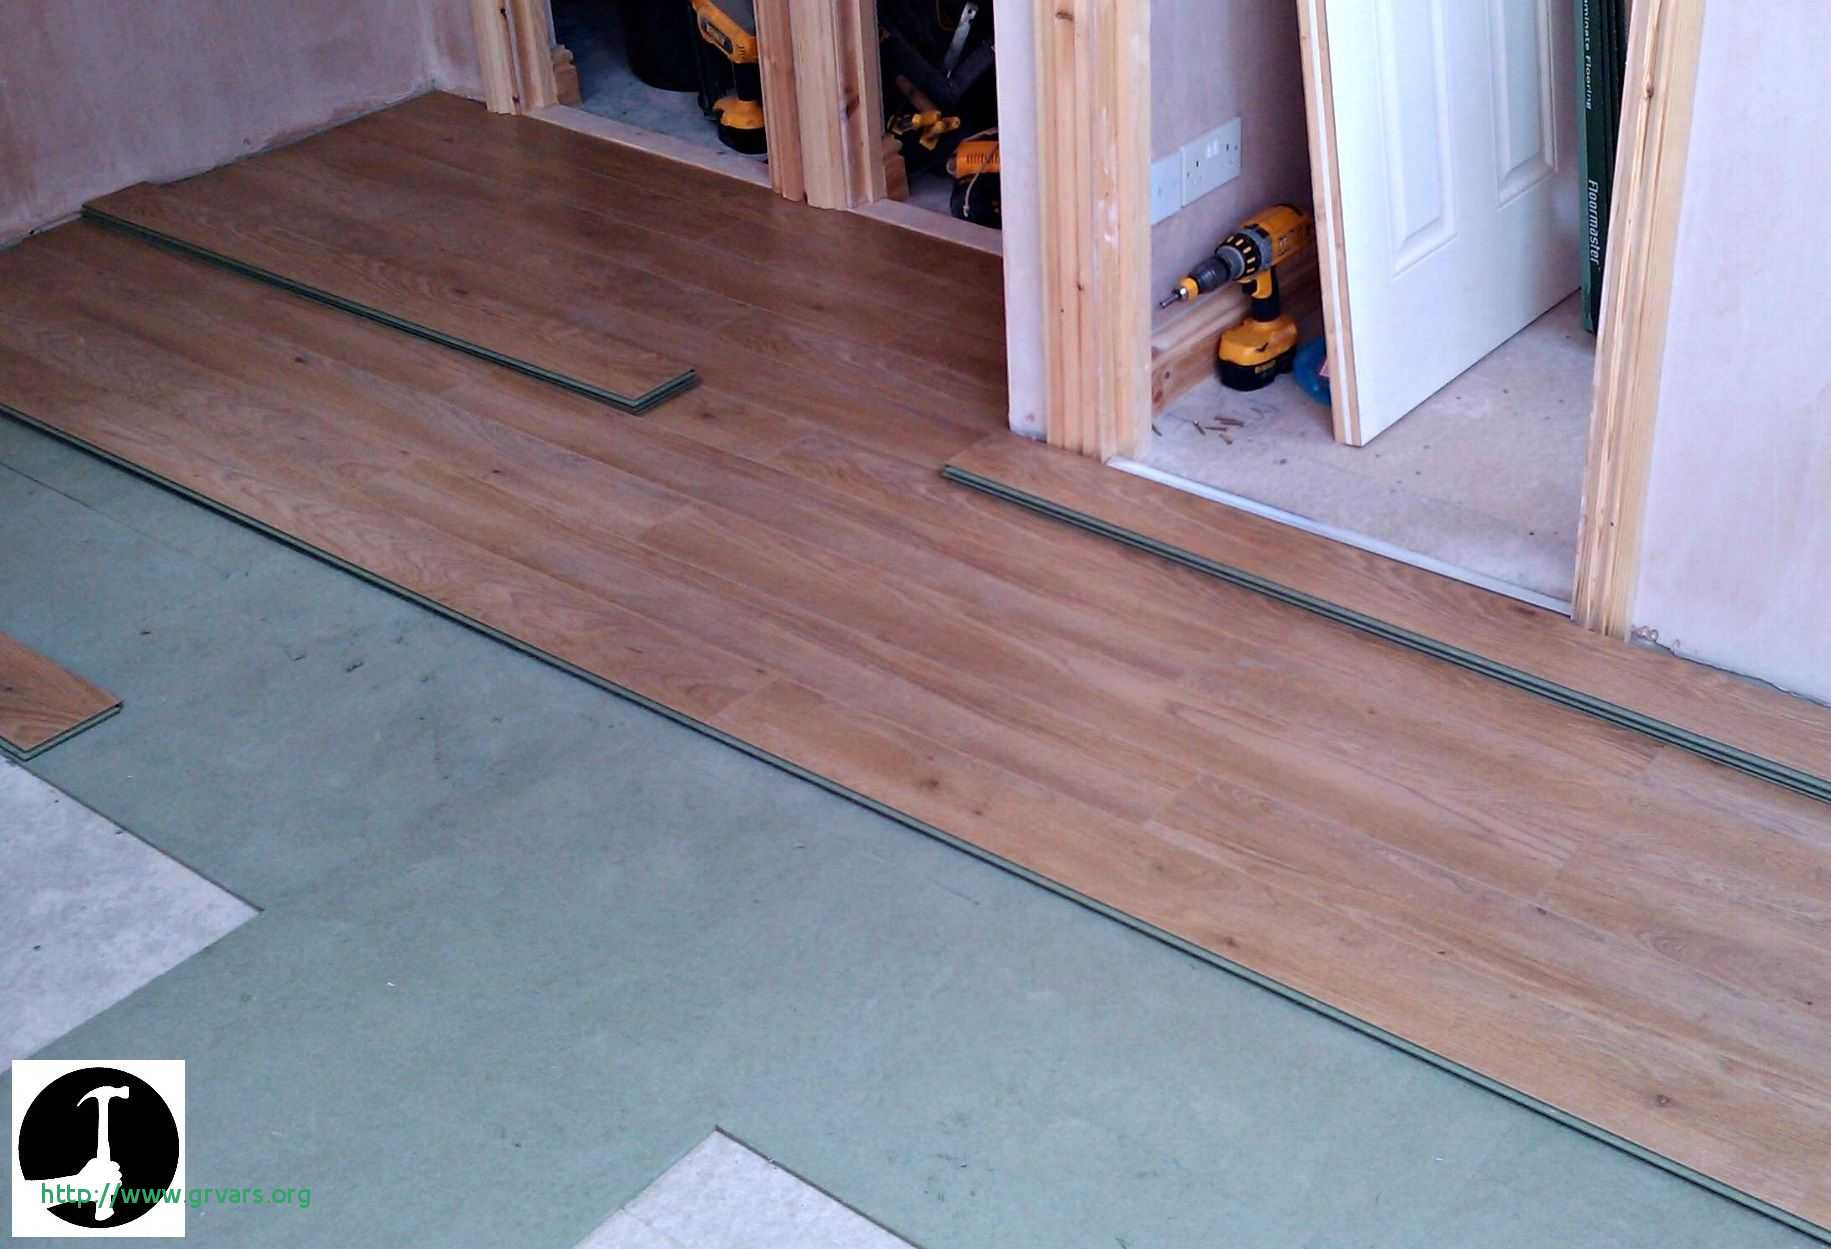 how to install hardwood floors over concrete of 19 luxe laying wood floors over concrete ideas blog with how to install laminate flooring ideas of installing laminate flooring over tile of installing laminate flooring